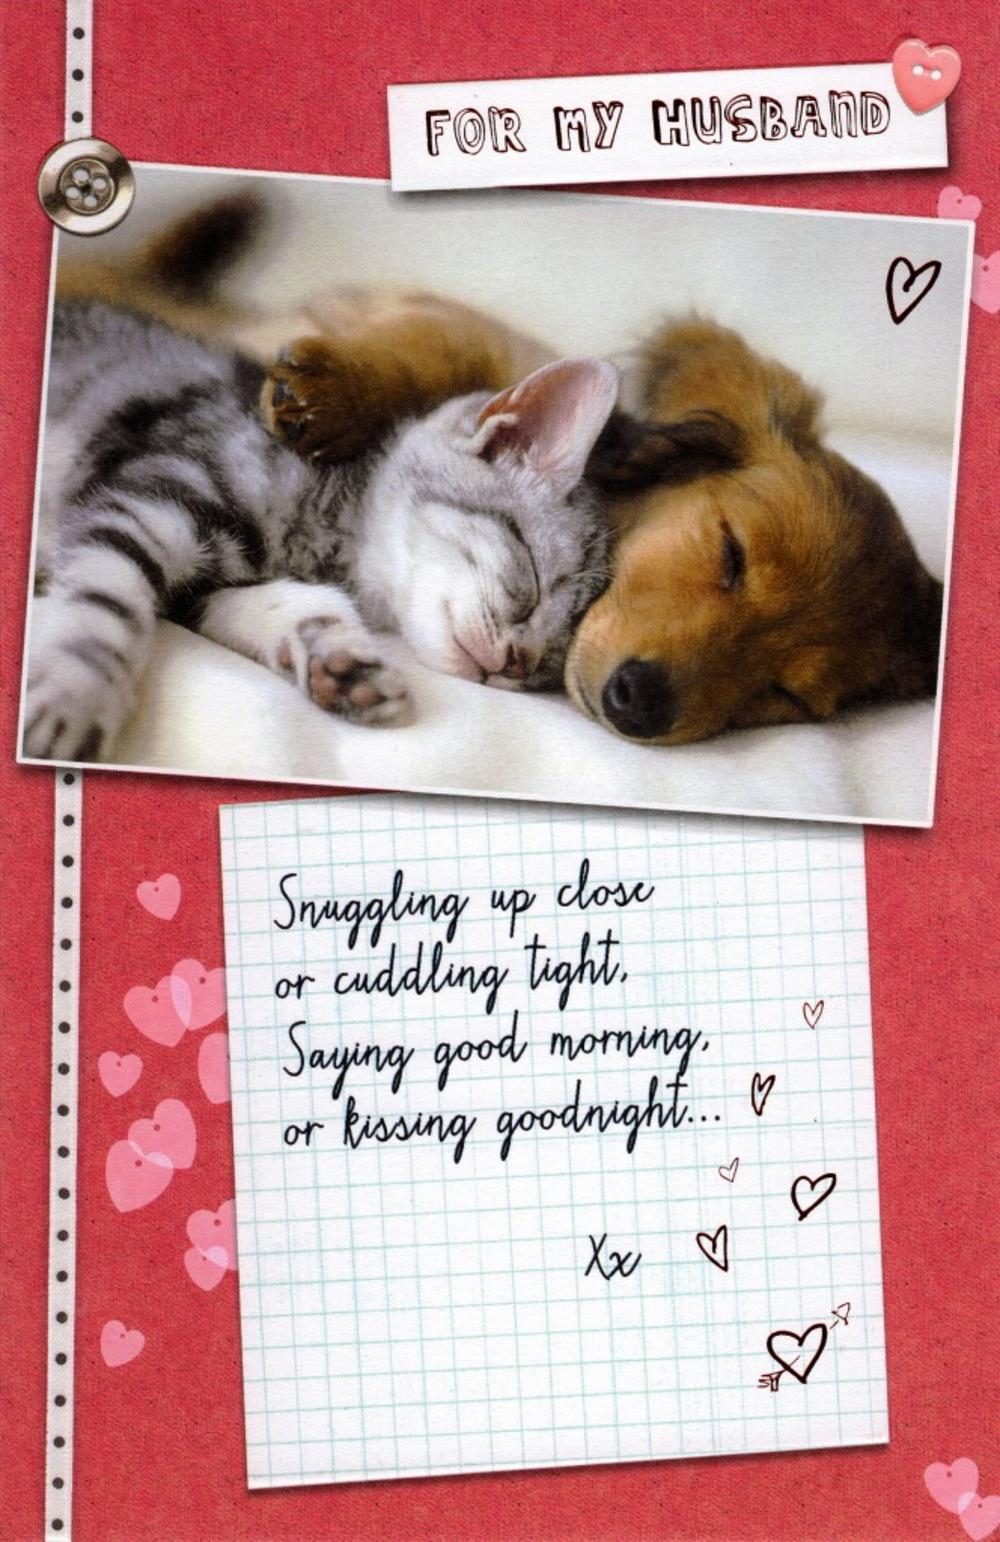 for my husband cat dog valentines day card - Dog Valentines Day Cards